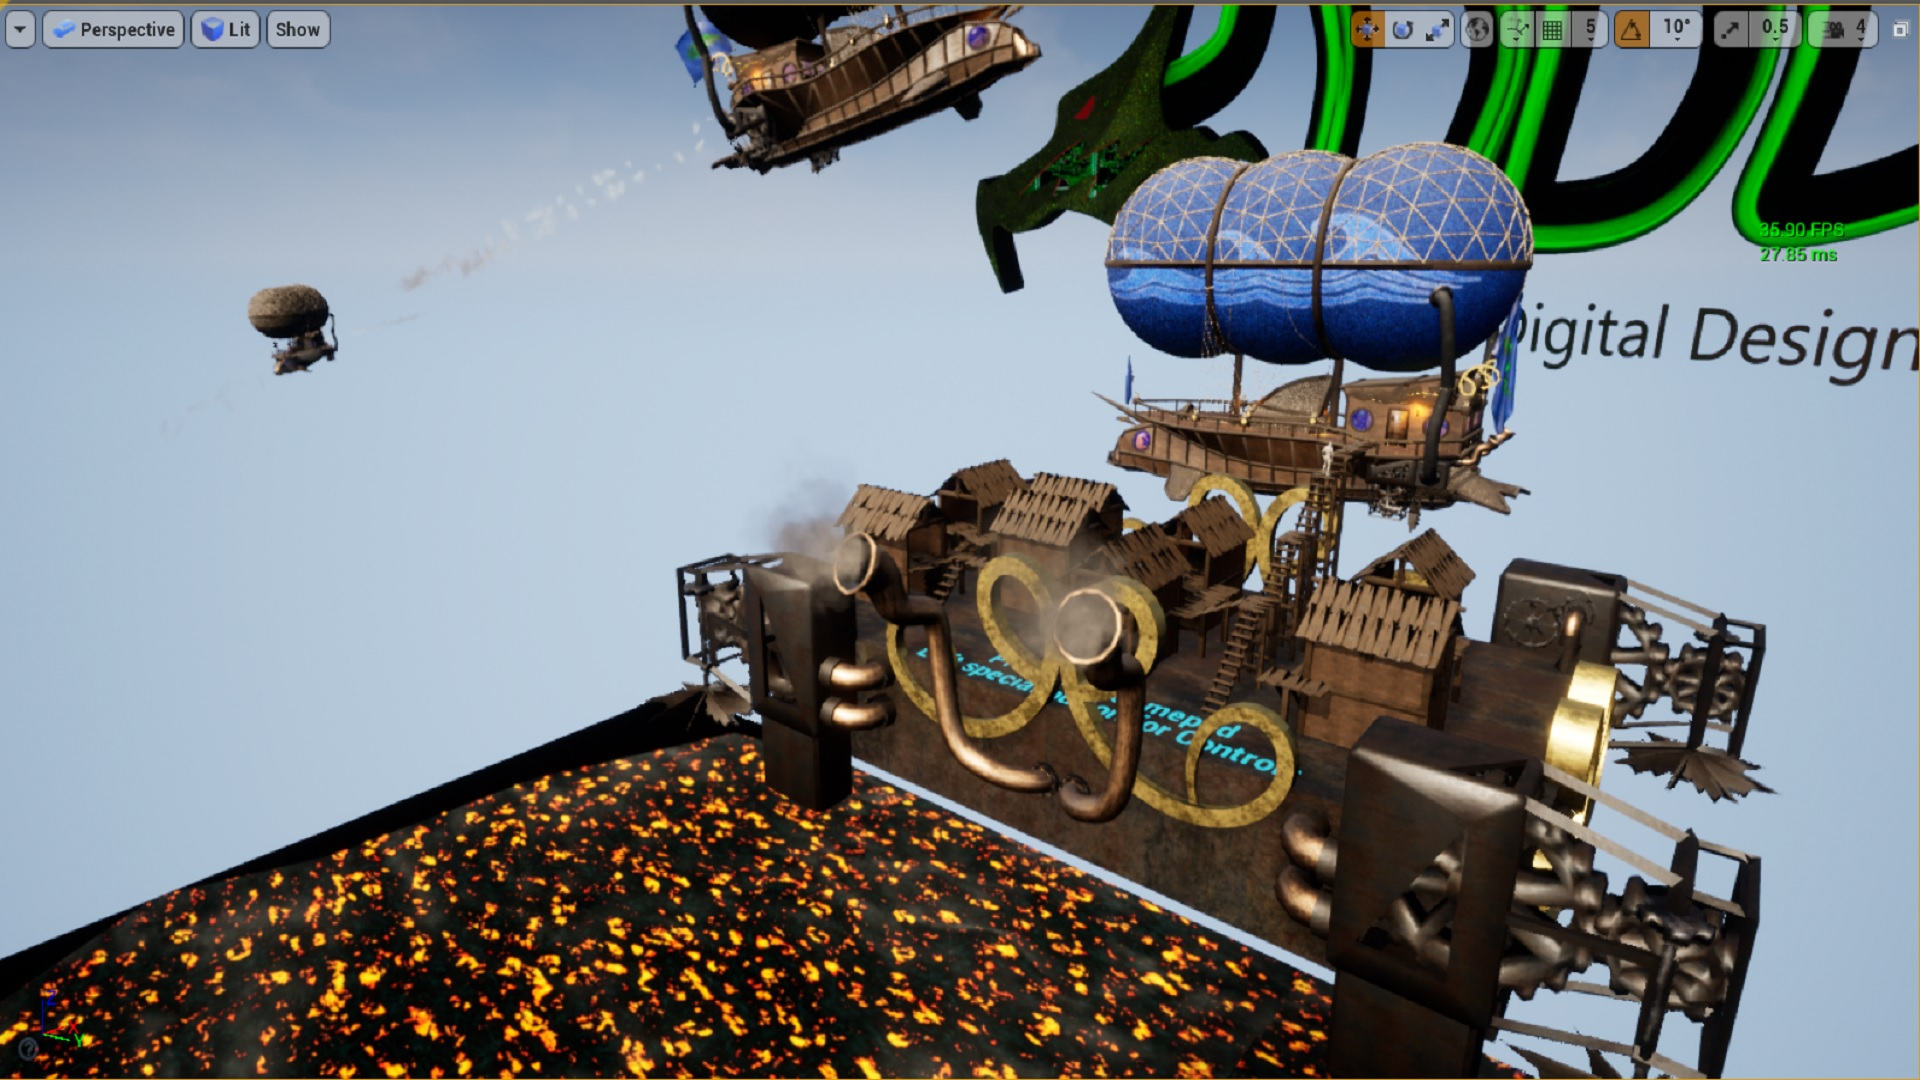 Dolphin Airship Blueprint by DDDesigns in Blueprints - UE4 Marketplace